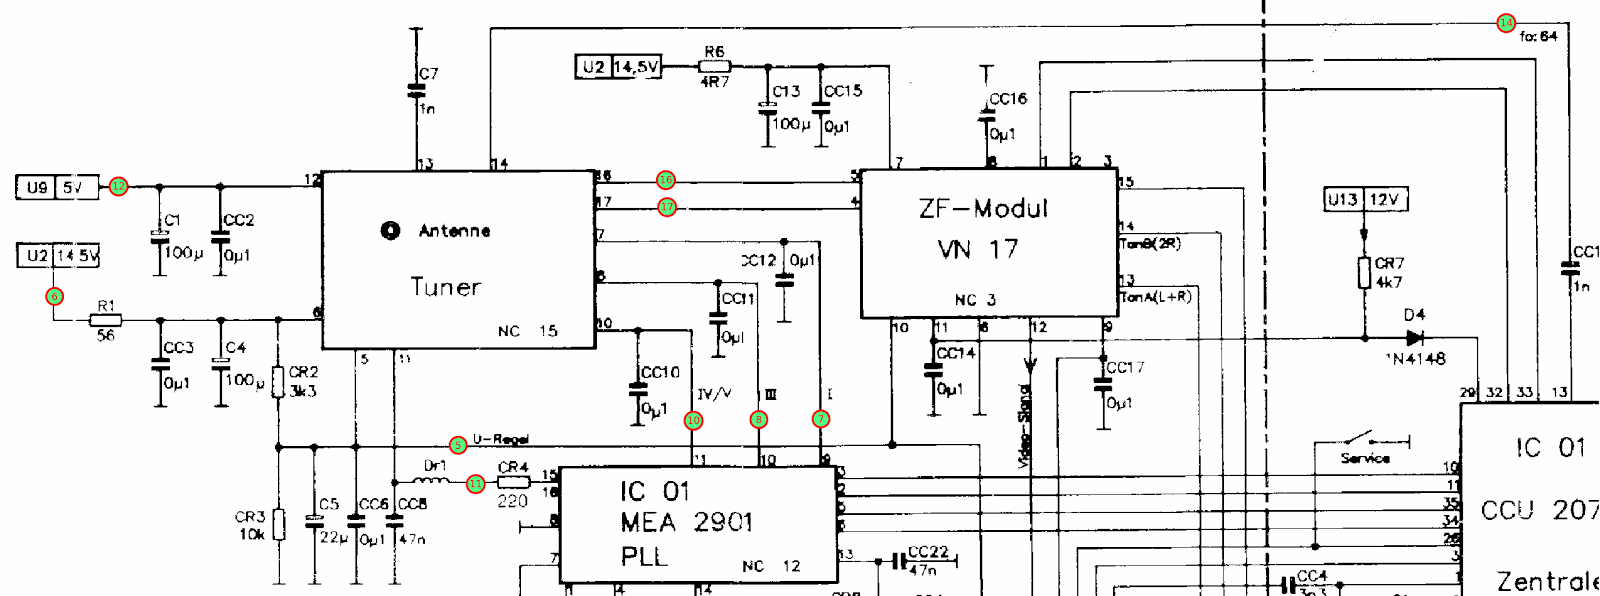 Tuner Uhf Tv Schematics Wiring Schematic Diagram Booster Amplifier As Well Antenna Circuit How To Identify An Unknown Radio One Transistor Homemade